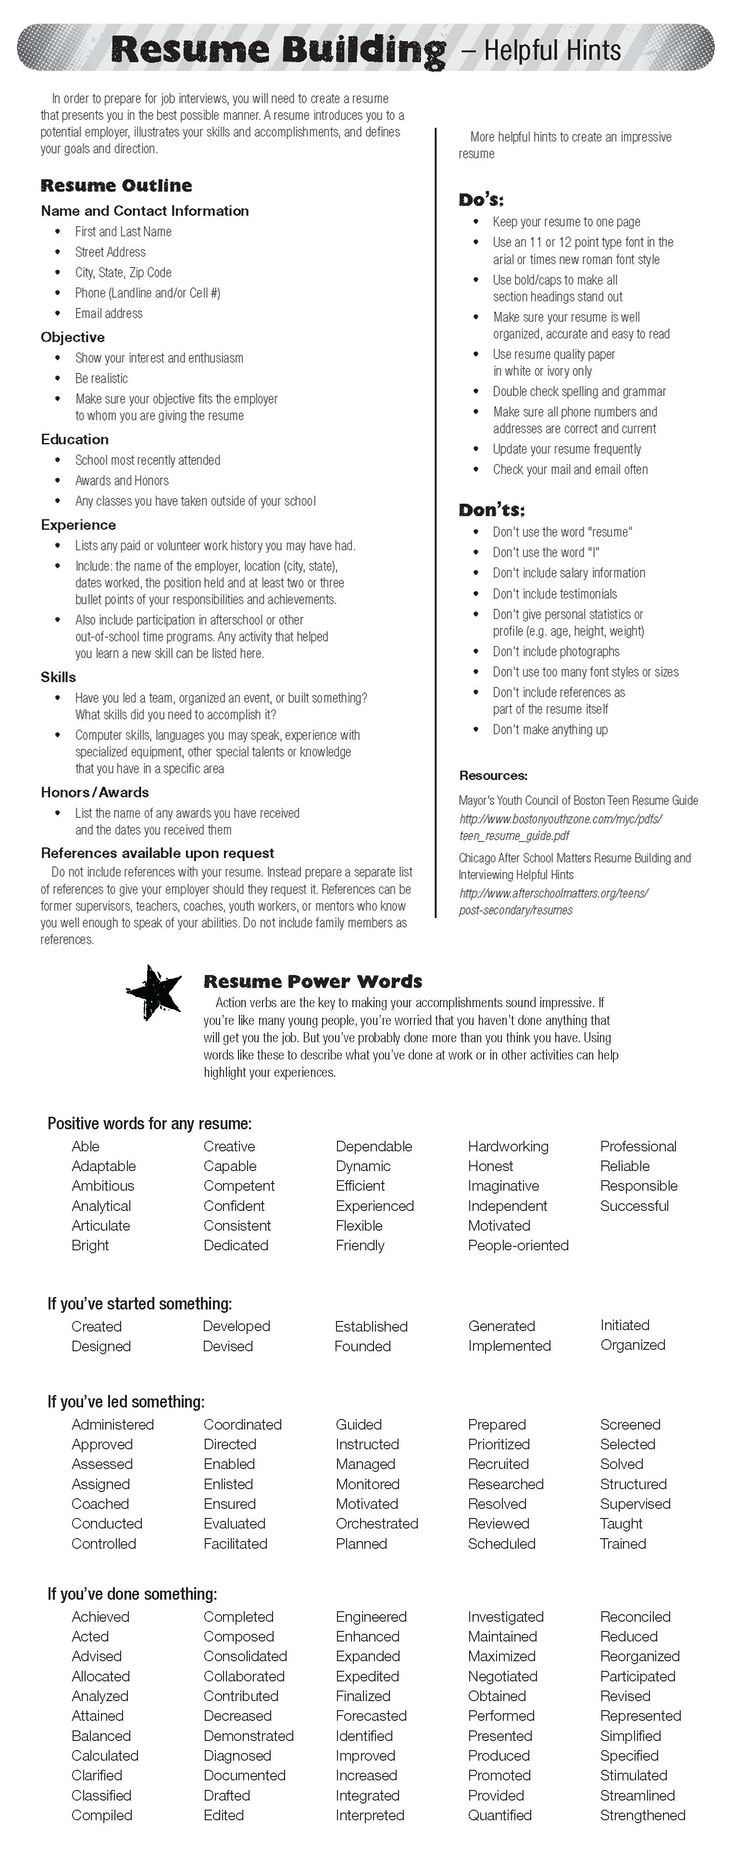 Opposenewapstandardsus  Winsome  Ideas About Resume On Pinterest  Cv Format Resume Cv And  With Goodlooking  Ideas About Resume On Pinterest  Cv Format Resume Cv And Resume Templates With Captivating What Should A Resume Cover Letter Include Also Tutor On Resume In Addition Free Printable Resume Examples And Free Templates For Resume As Well As Resume Title Names Additionally Creating A Cover Letter For Resume From Pinterestcom With Opposenewapstandardsus  Goodlooking  Ideas About Resume On Pinterest  Cv Format Resume Cv And  With Captivating  Ideas About Resume On Pinterest  Cv Format Resume Cv And Resume Templates And Winsome What Should A Resume Cover Letter Include Also Tutor On Resume In Addition Free Printable Resume Examples From Pinterestcom